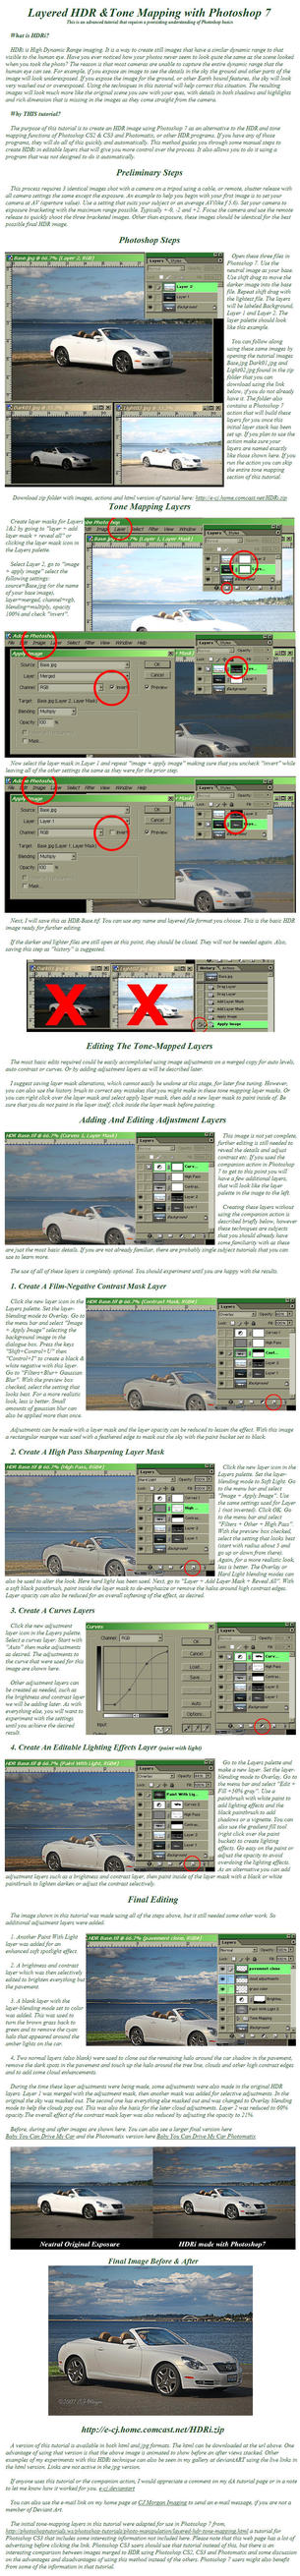 Photoshop 7 HDRi Tutorial  V.2 by e-CJ